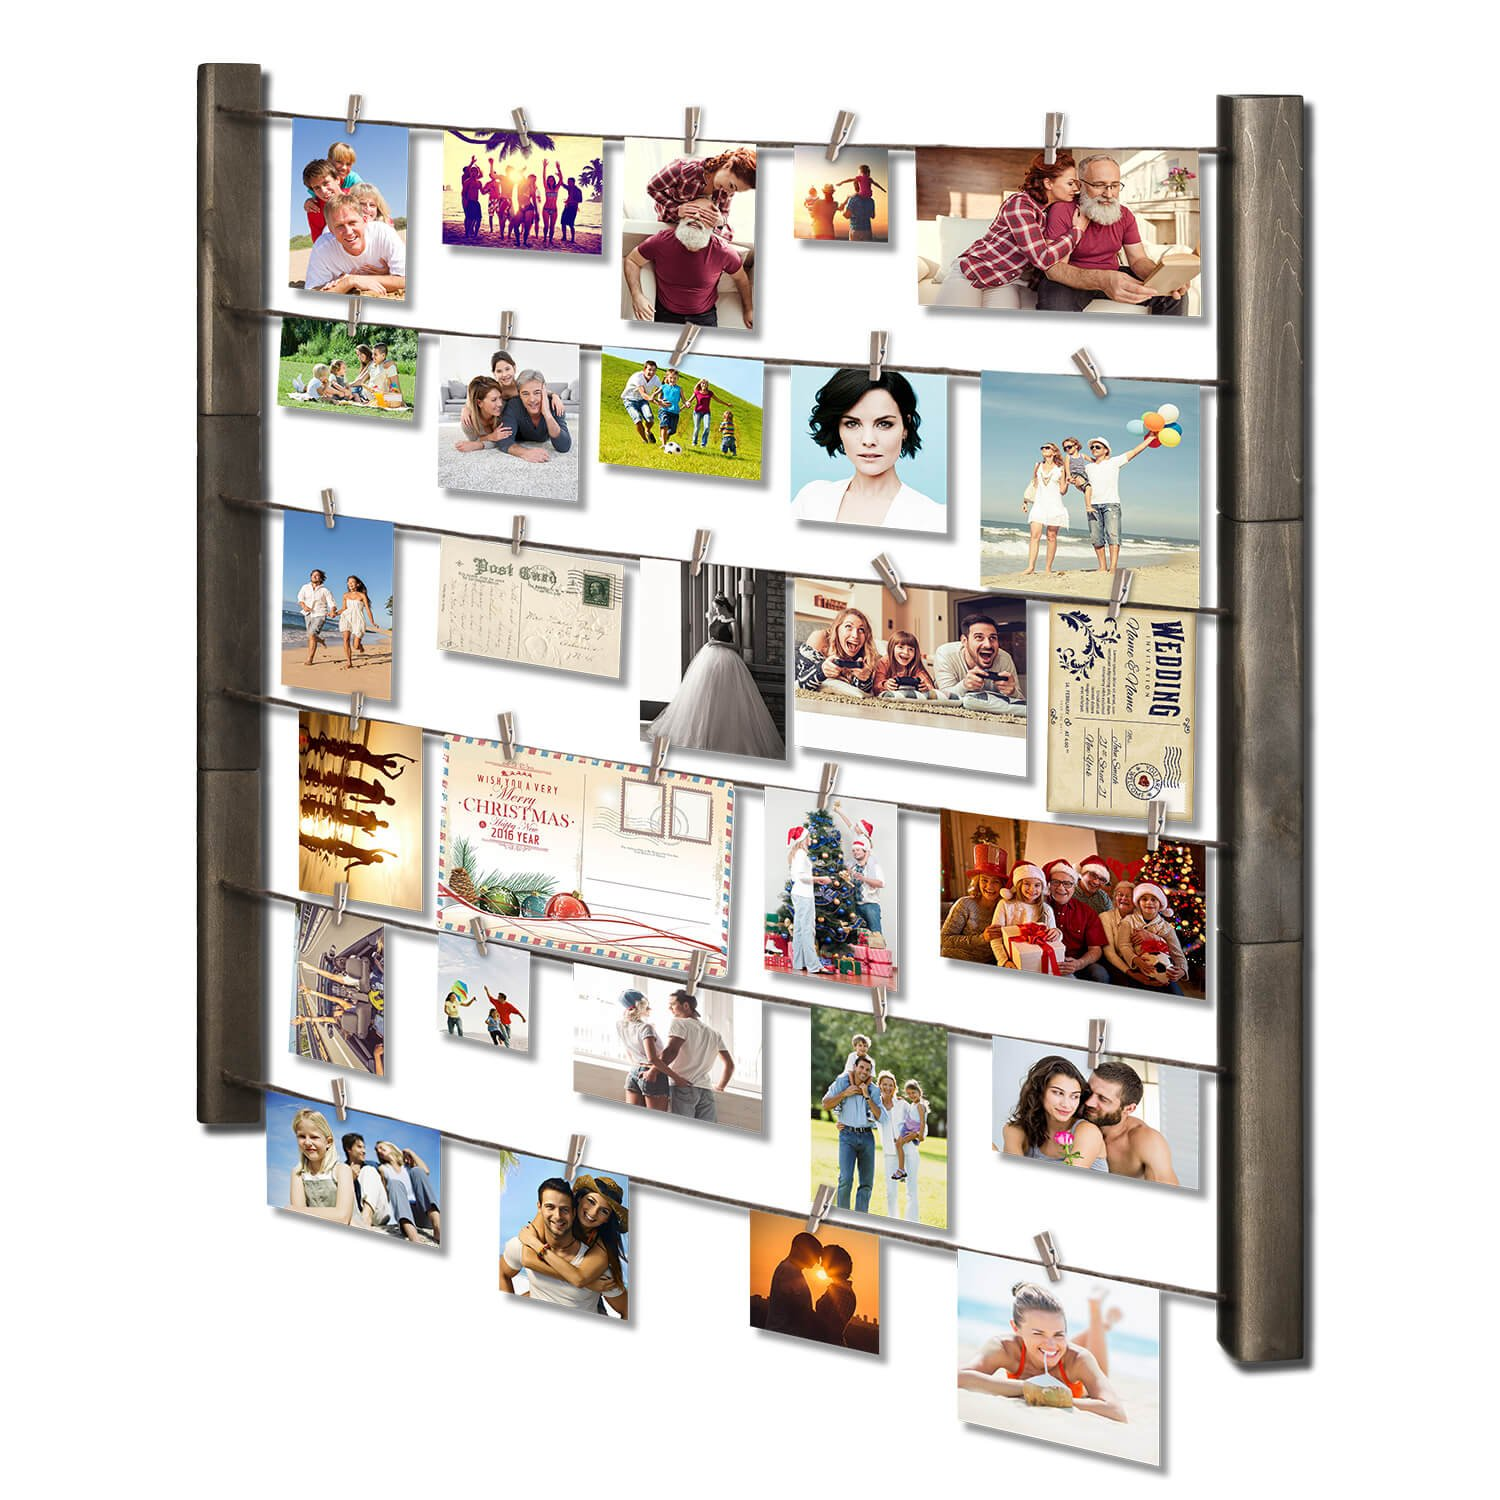 RooLee Picture Frame - Wood Picture Frame Collage for Wall Decor - Multi Photo Display 30'' x 26'' with 36 Clips - Vertical or Horizontal Display(Grey)